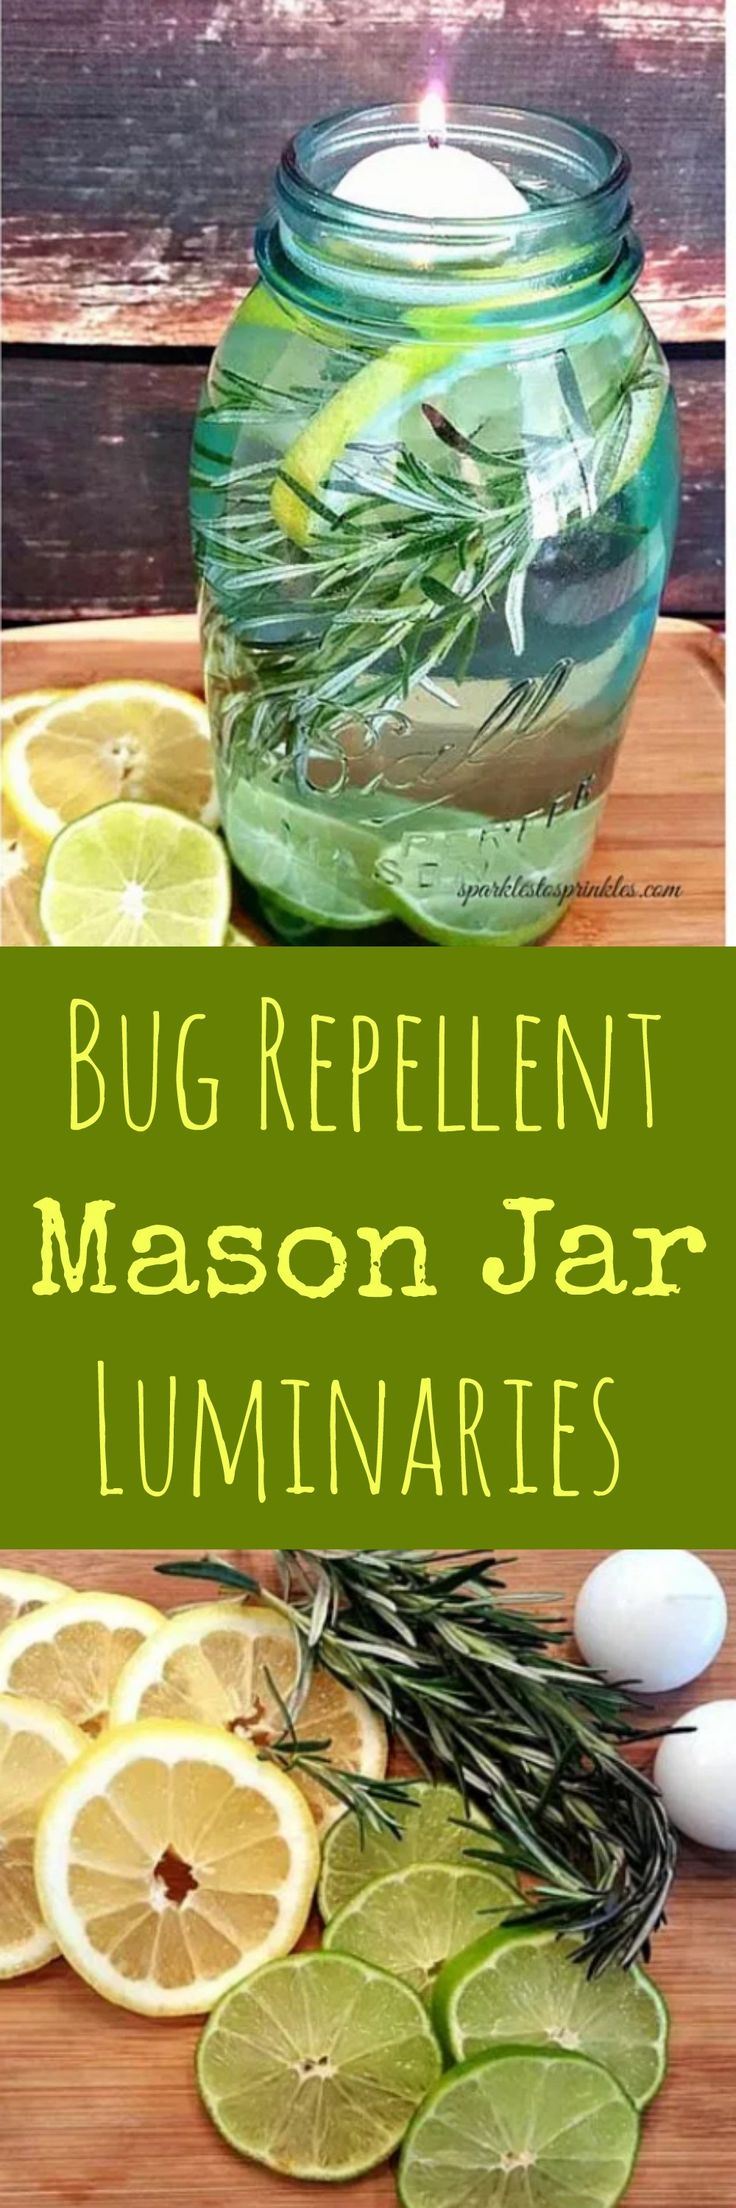 DIY Bug Repellent Mason Jar Luminaries are both gorgeous and extremely effective. An amazing mix of essential oils to keep those bugs away! Pin for Later! #diy #essentialoils #summer